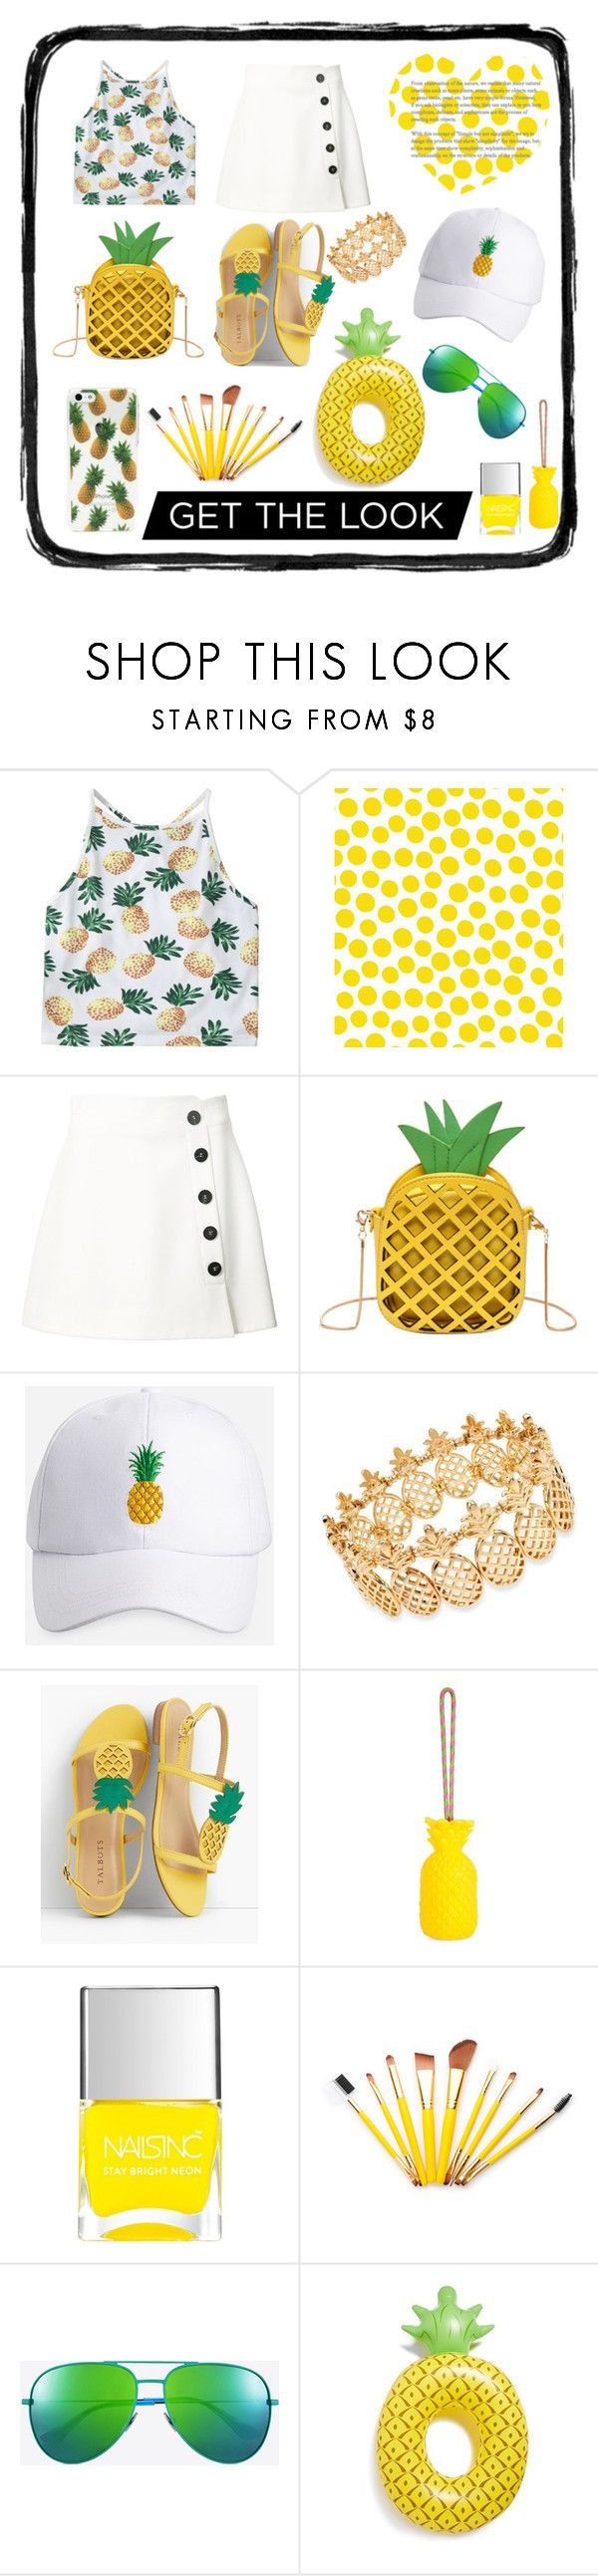 """""""#Pineapple#Yellow#Fun"""" by whitney555 ❤ liked on Polyvore featuring Jennifer Paganelli, Misha Nonoo, Ashley Stewart, INC International Concepts, Talbots, Sunnylife, Nails Inc., Yves Saint Laurent and Big Mouth"""